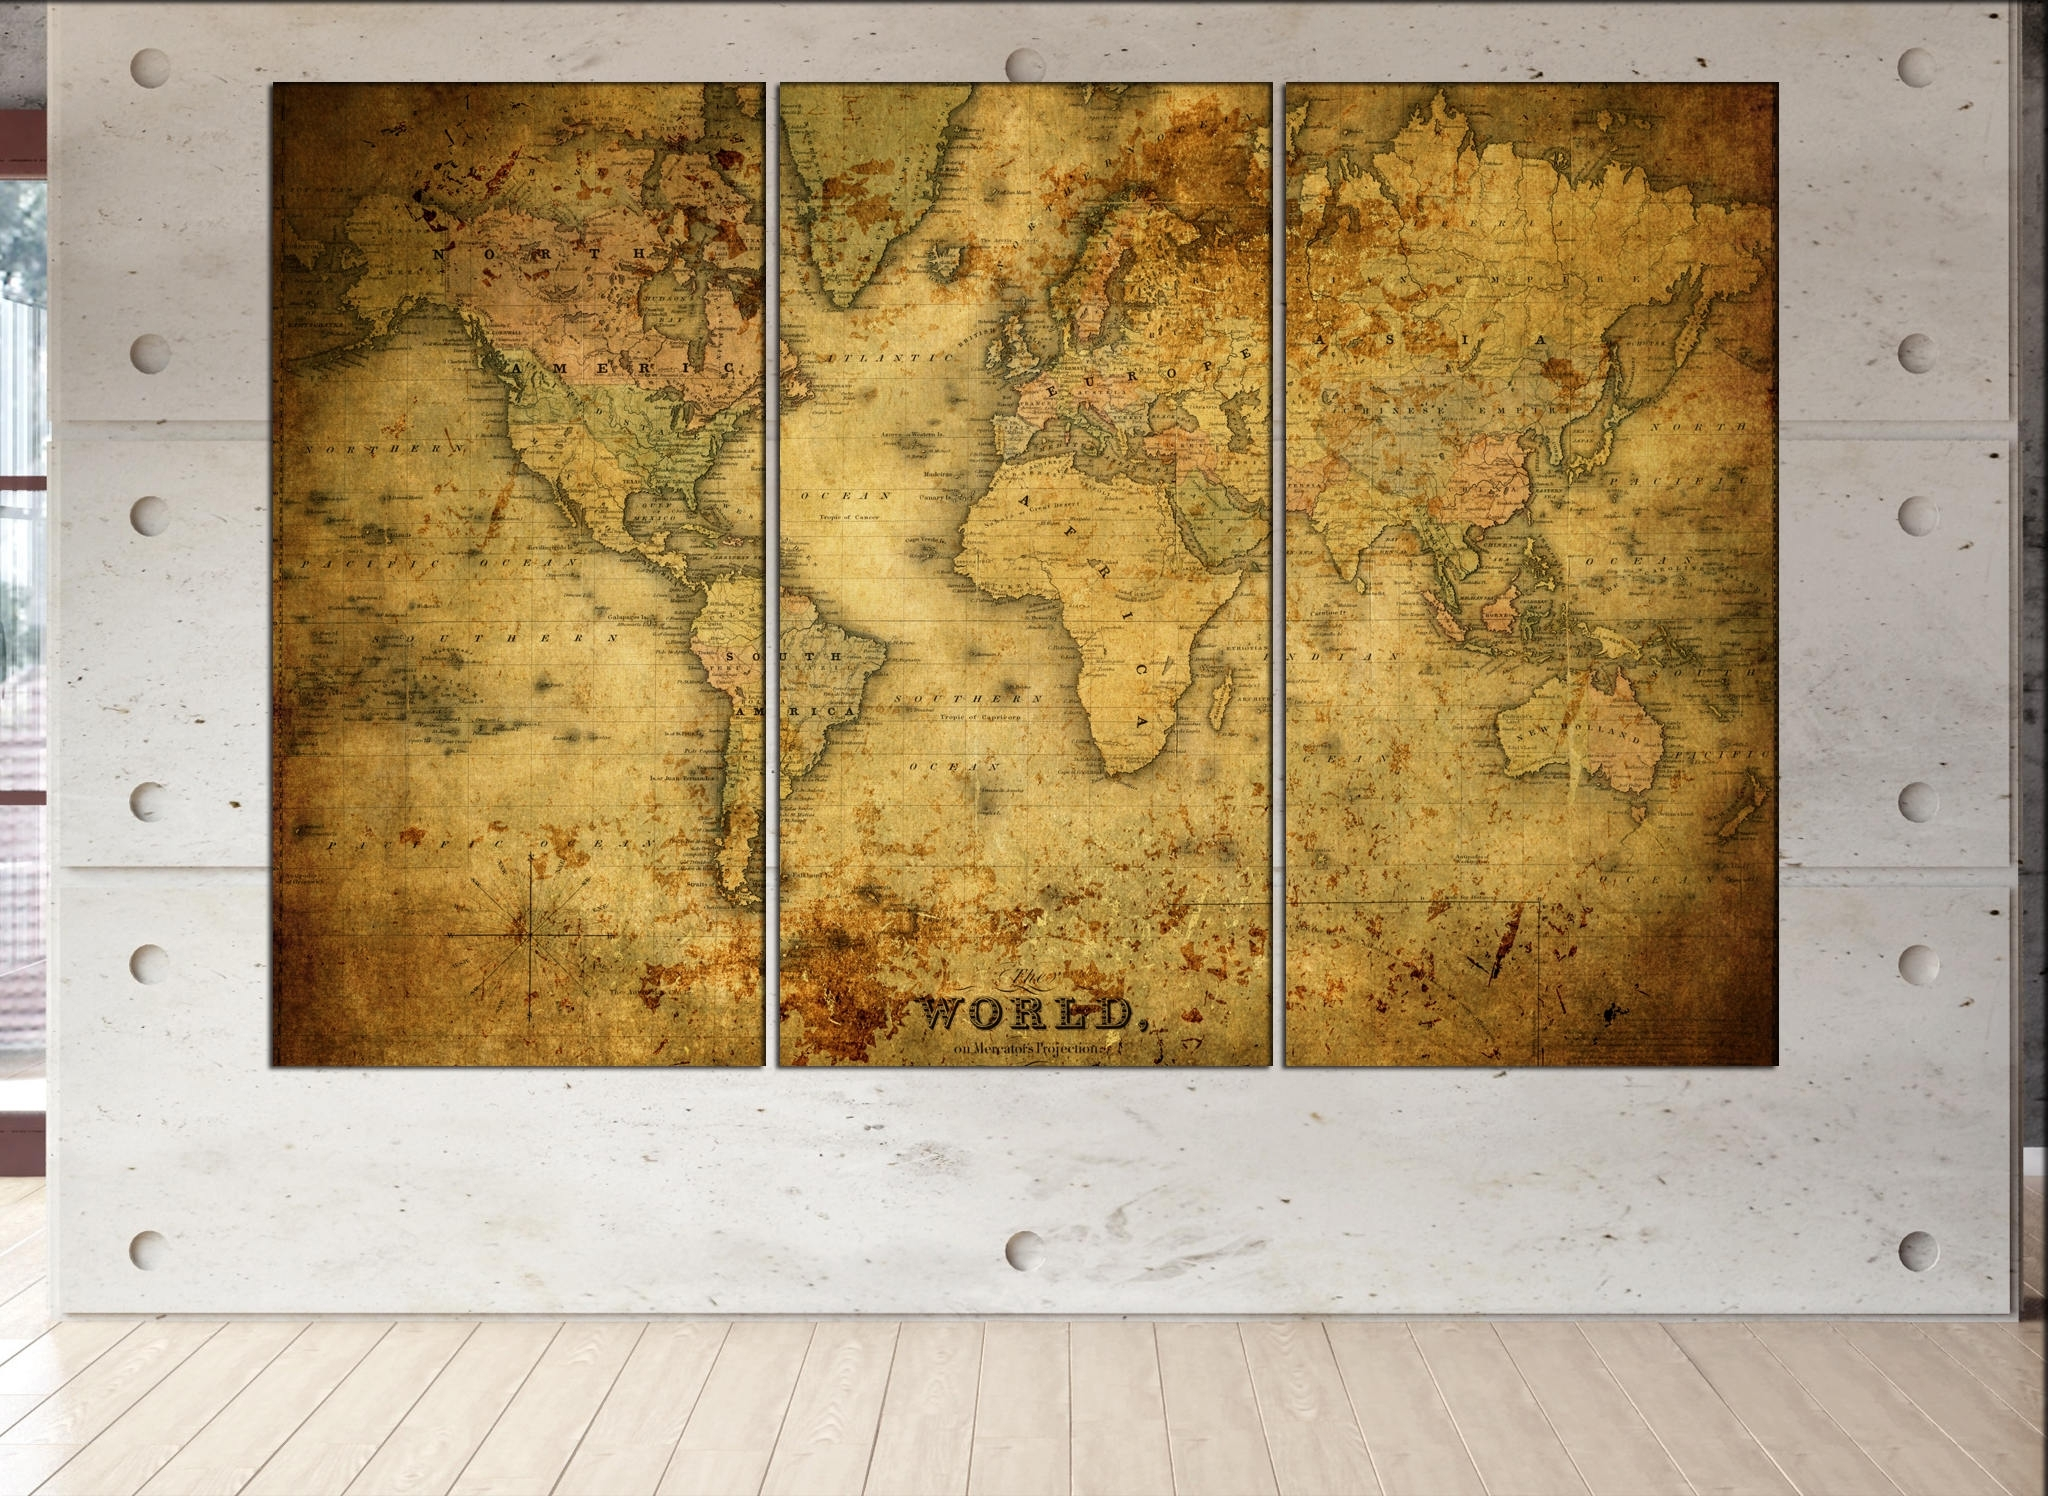 Old World Map Canvas Wall Art Print On Canvas Wall Art Old World Map intended for Old World Map Wall Art (Image 11 of 20)